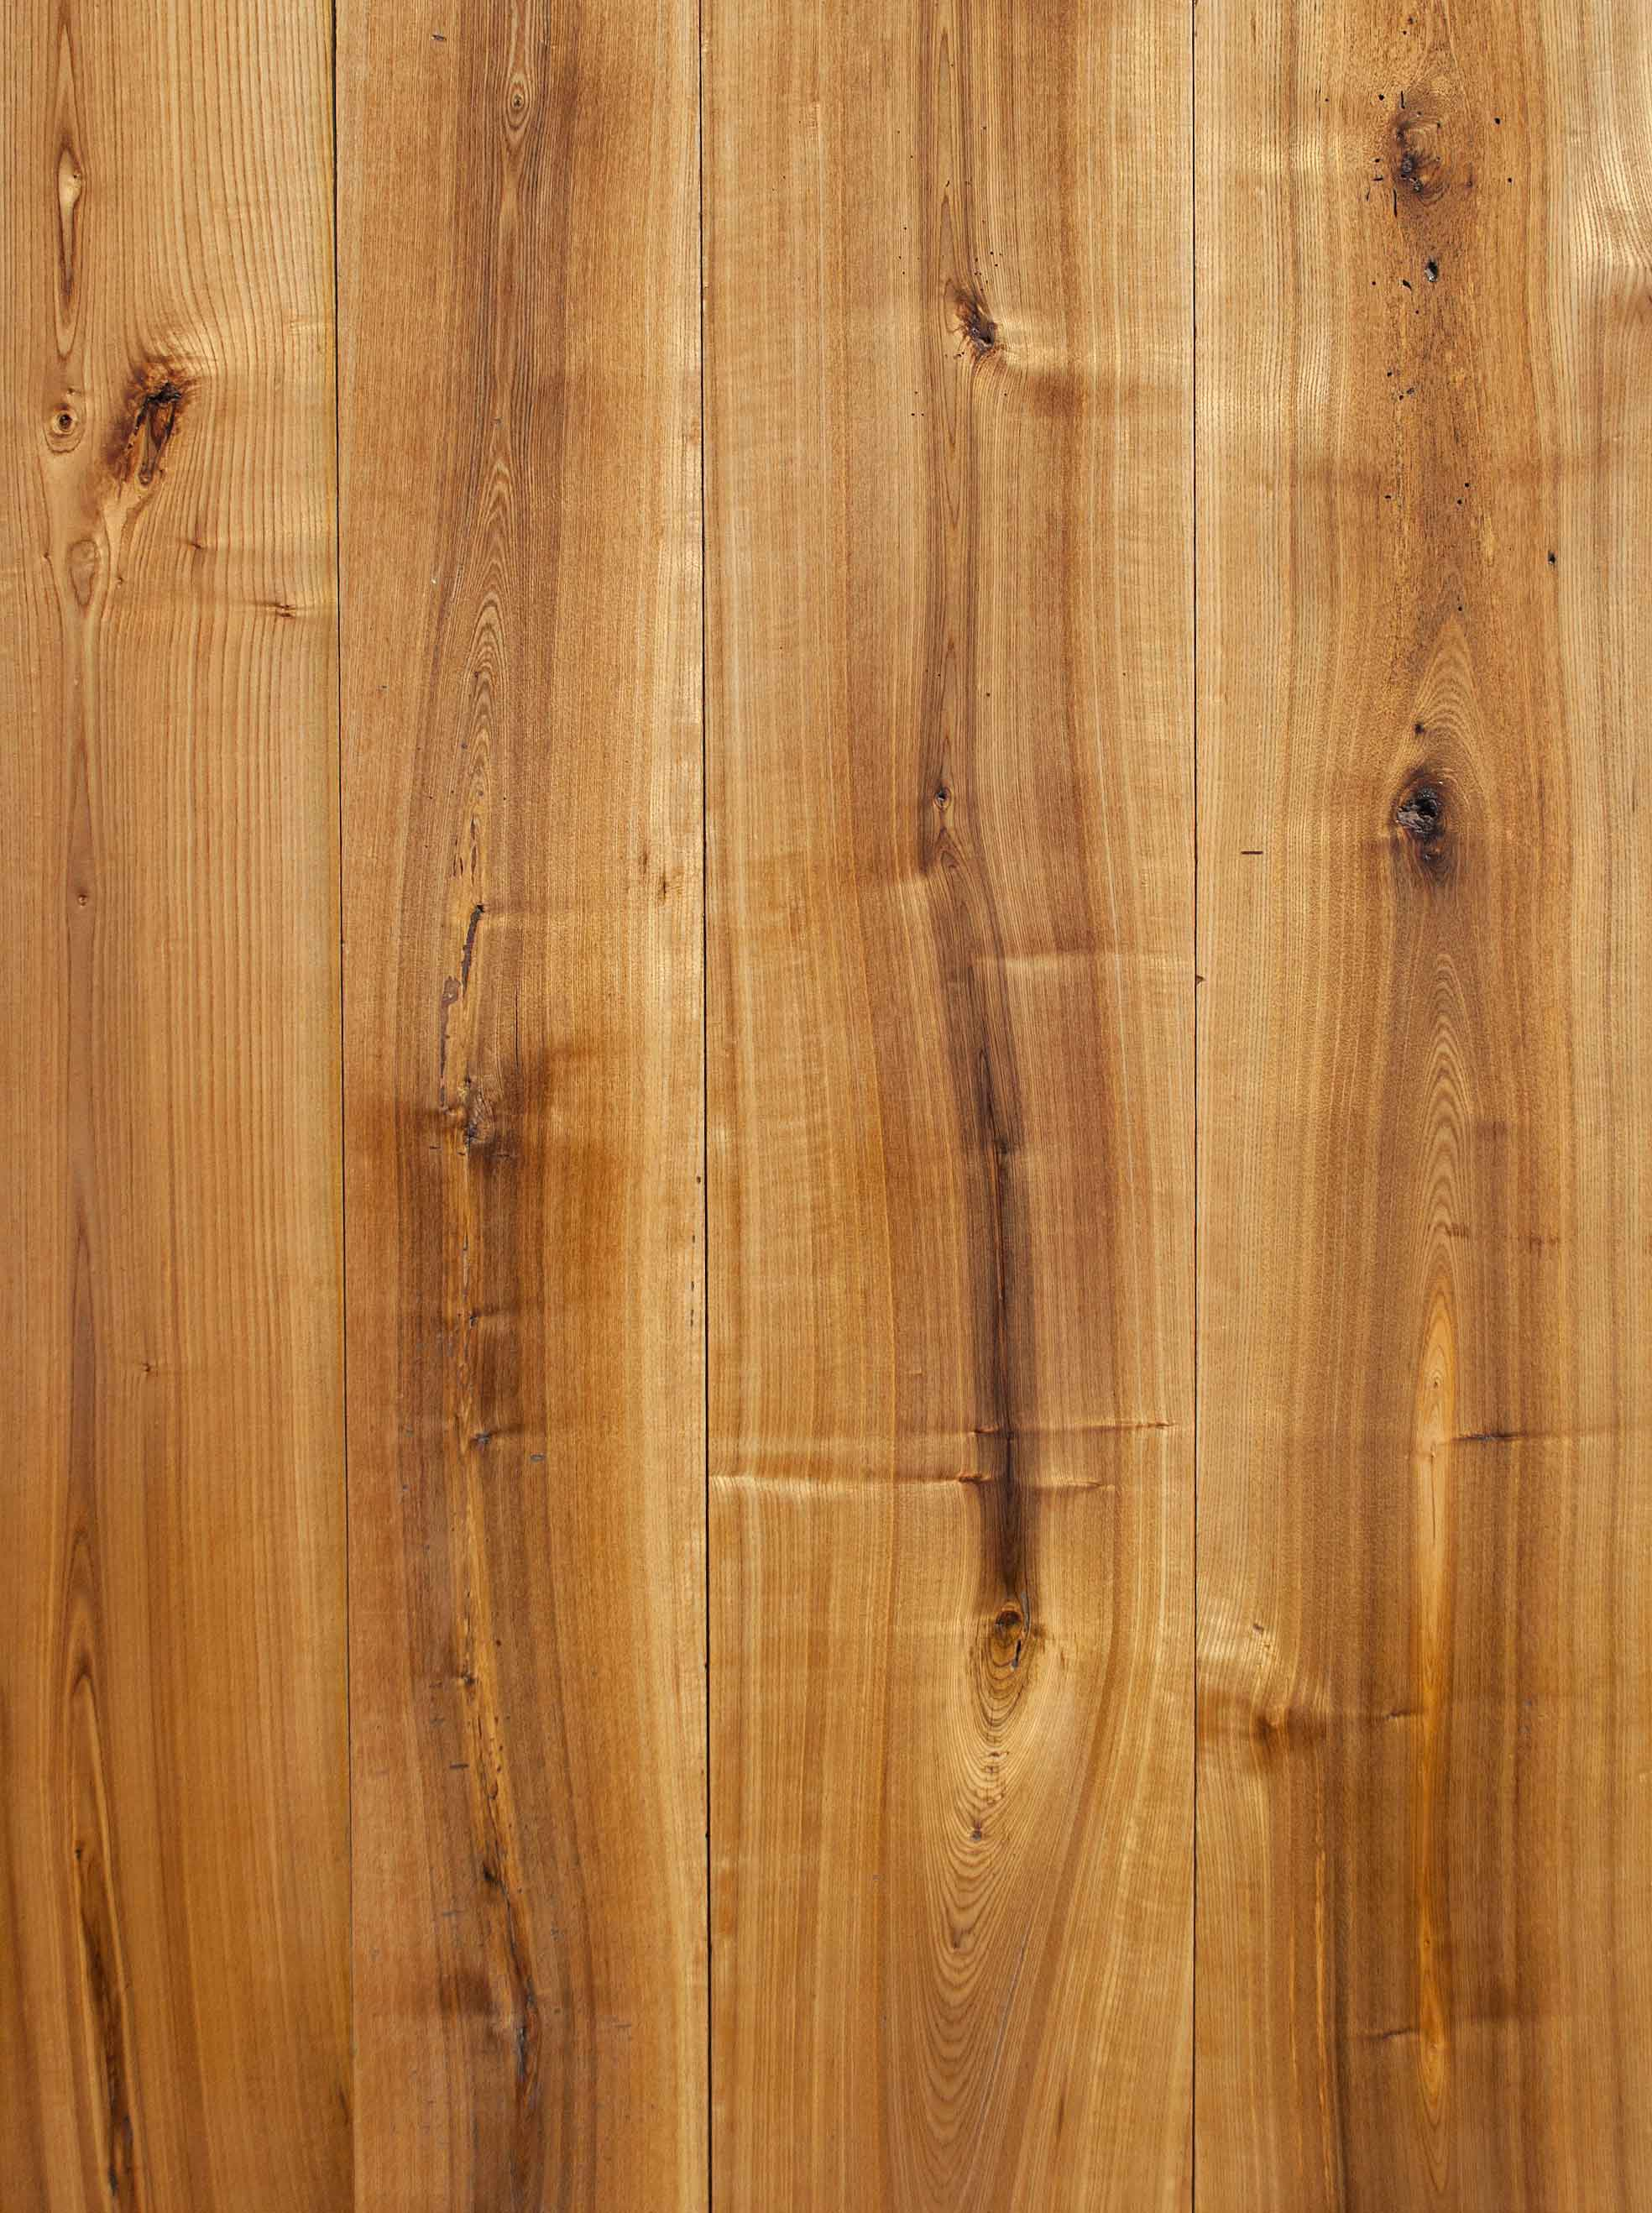 Reclaimed Black Ash Wood Flooring - Finished With Tung Oil